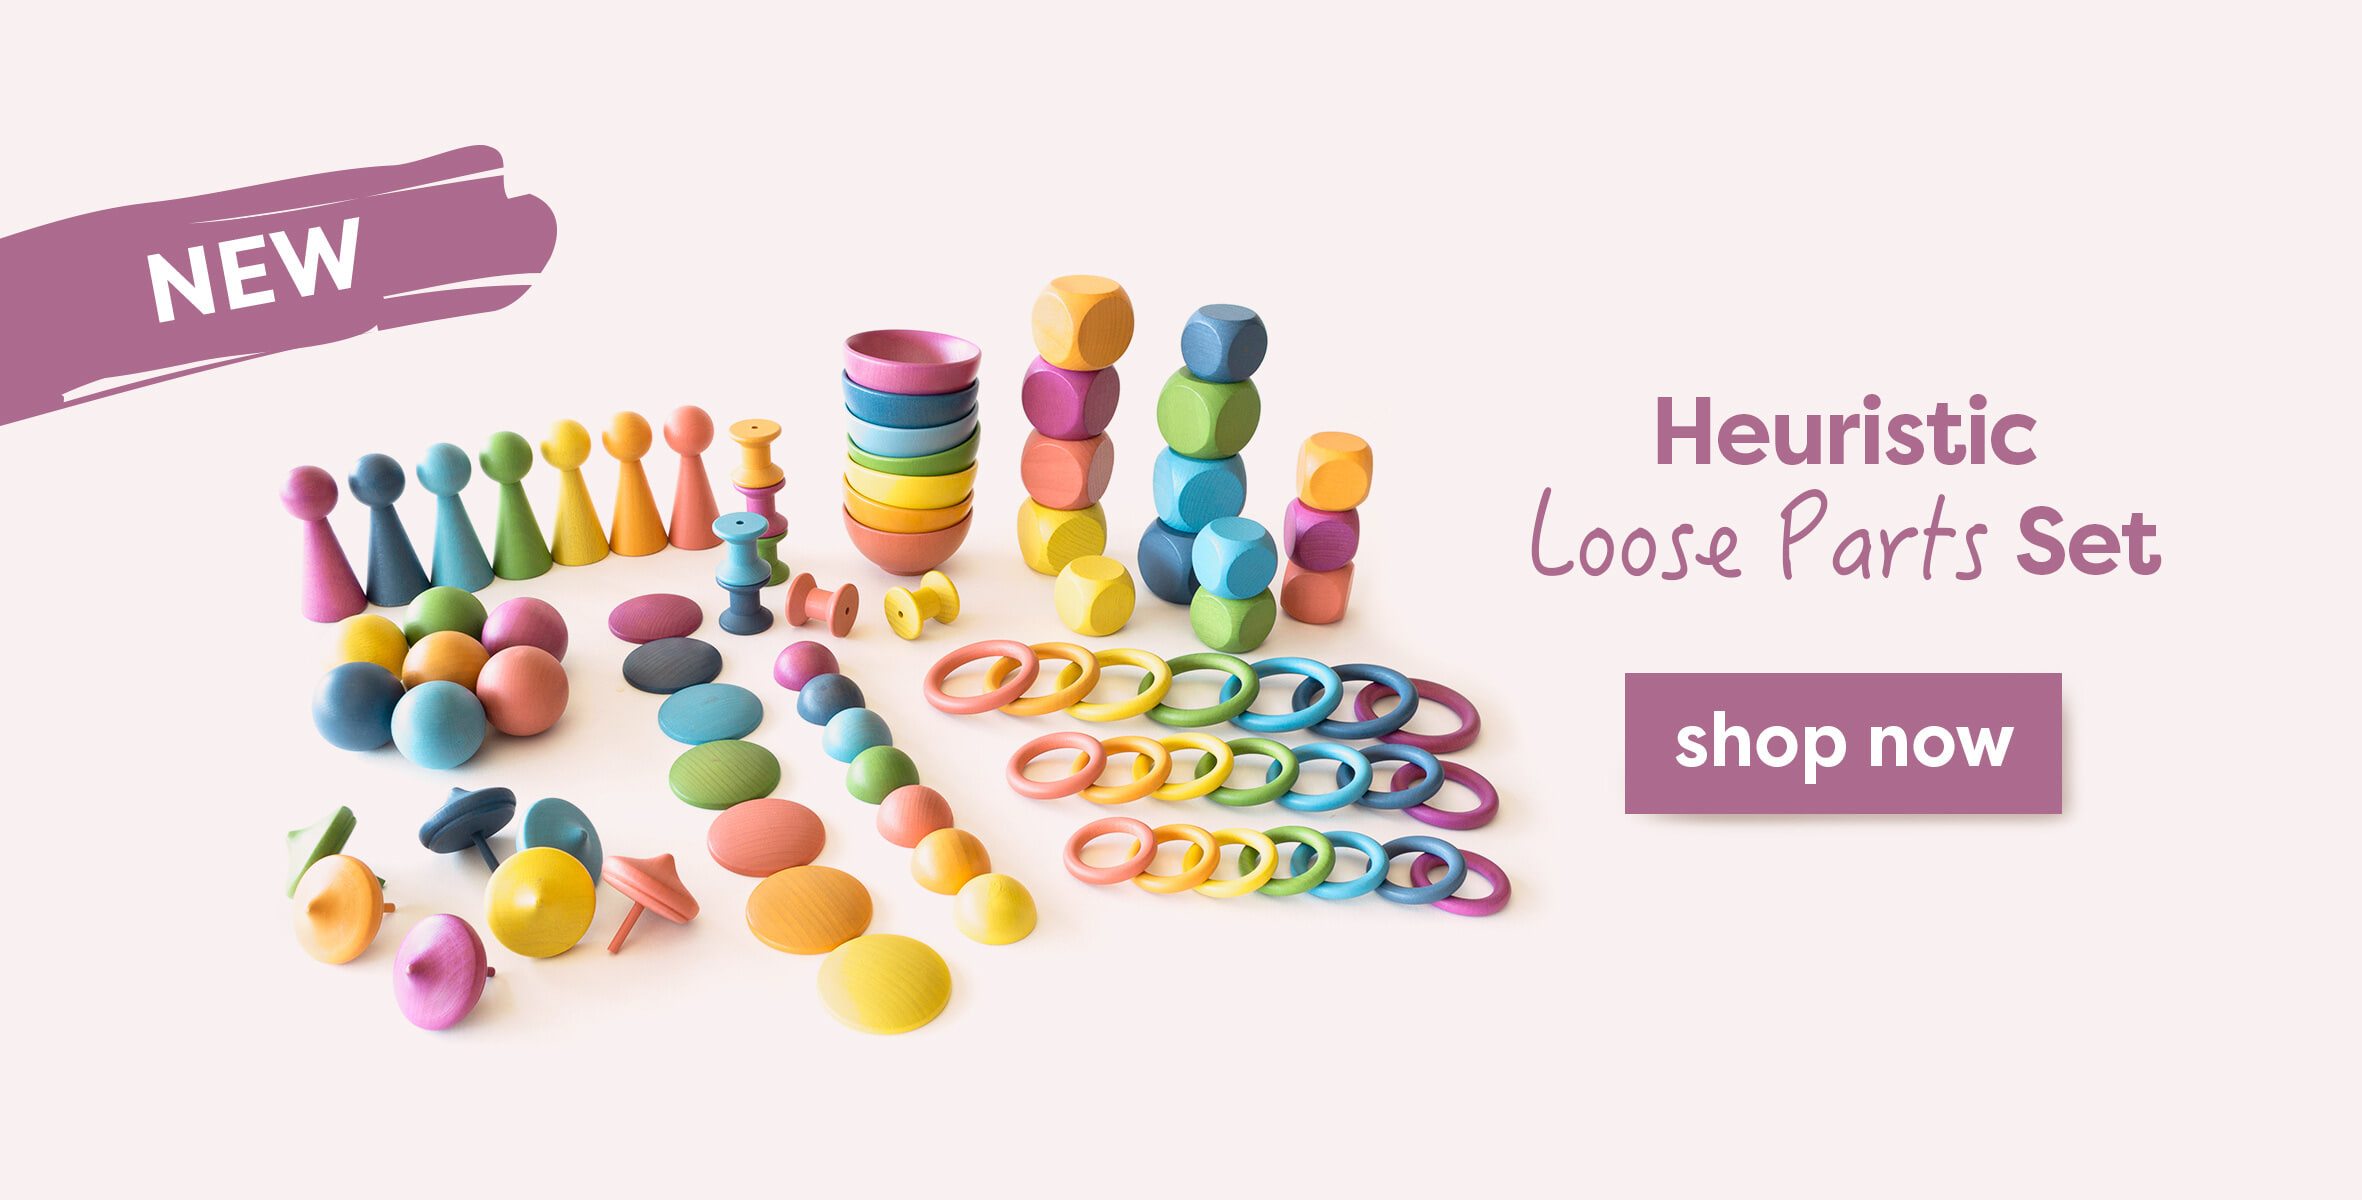 heuristic loose parts set